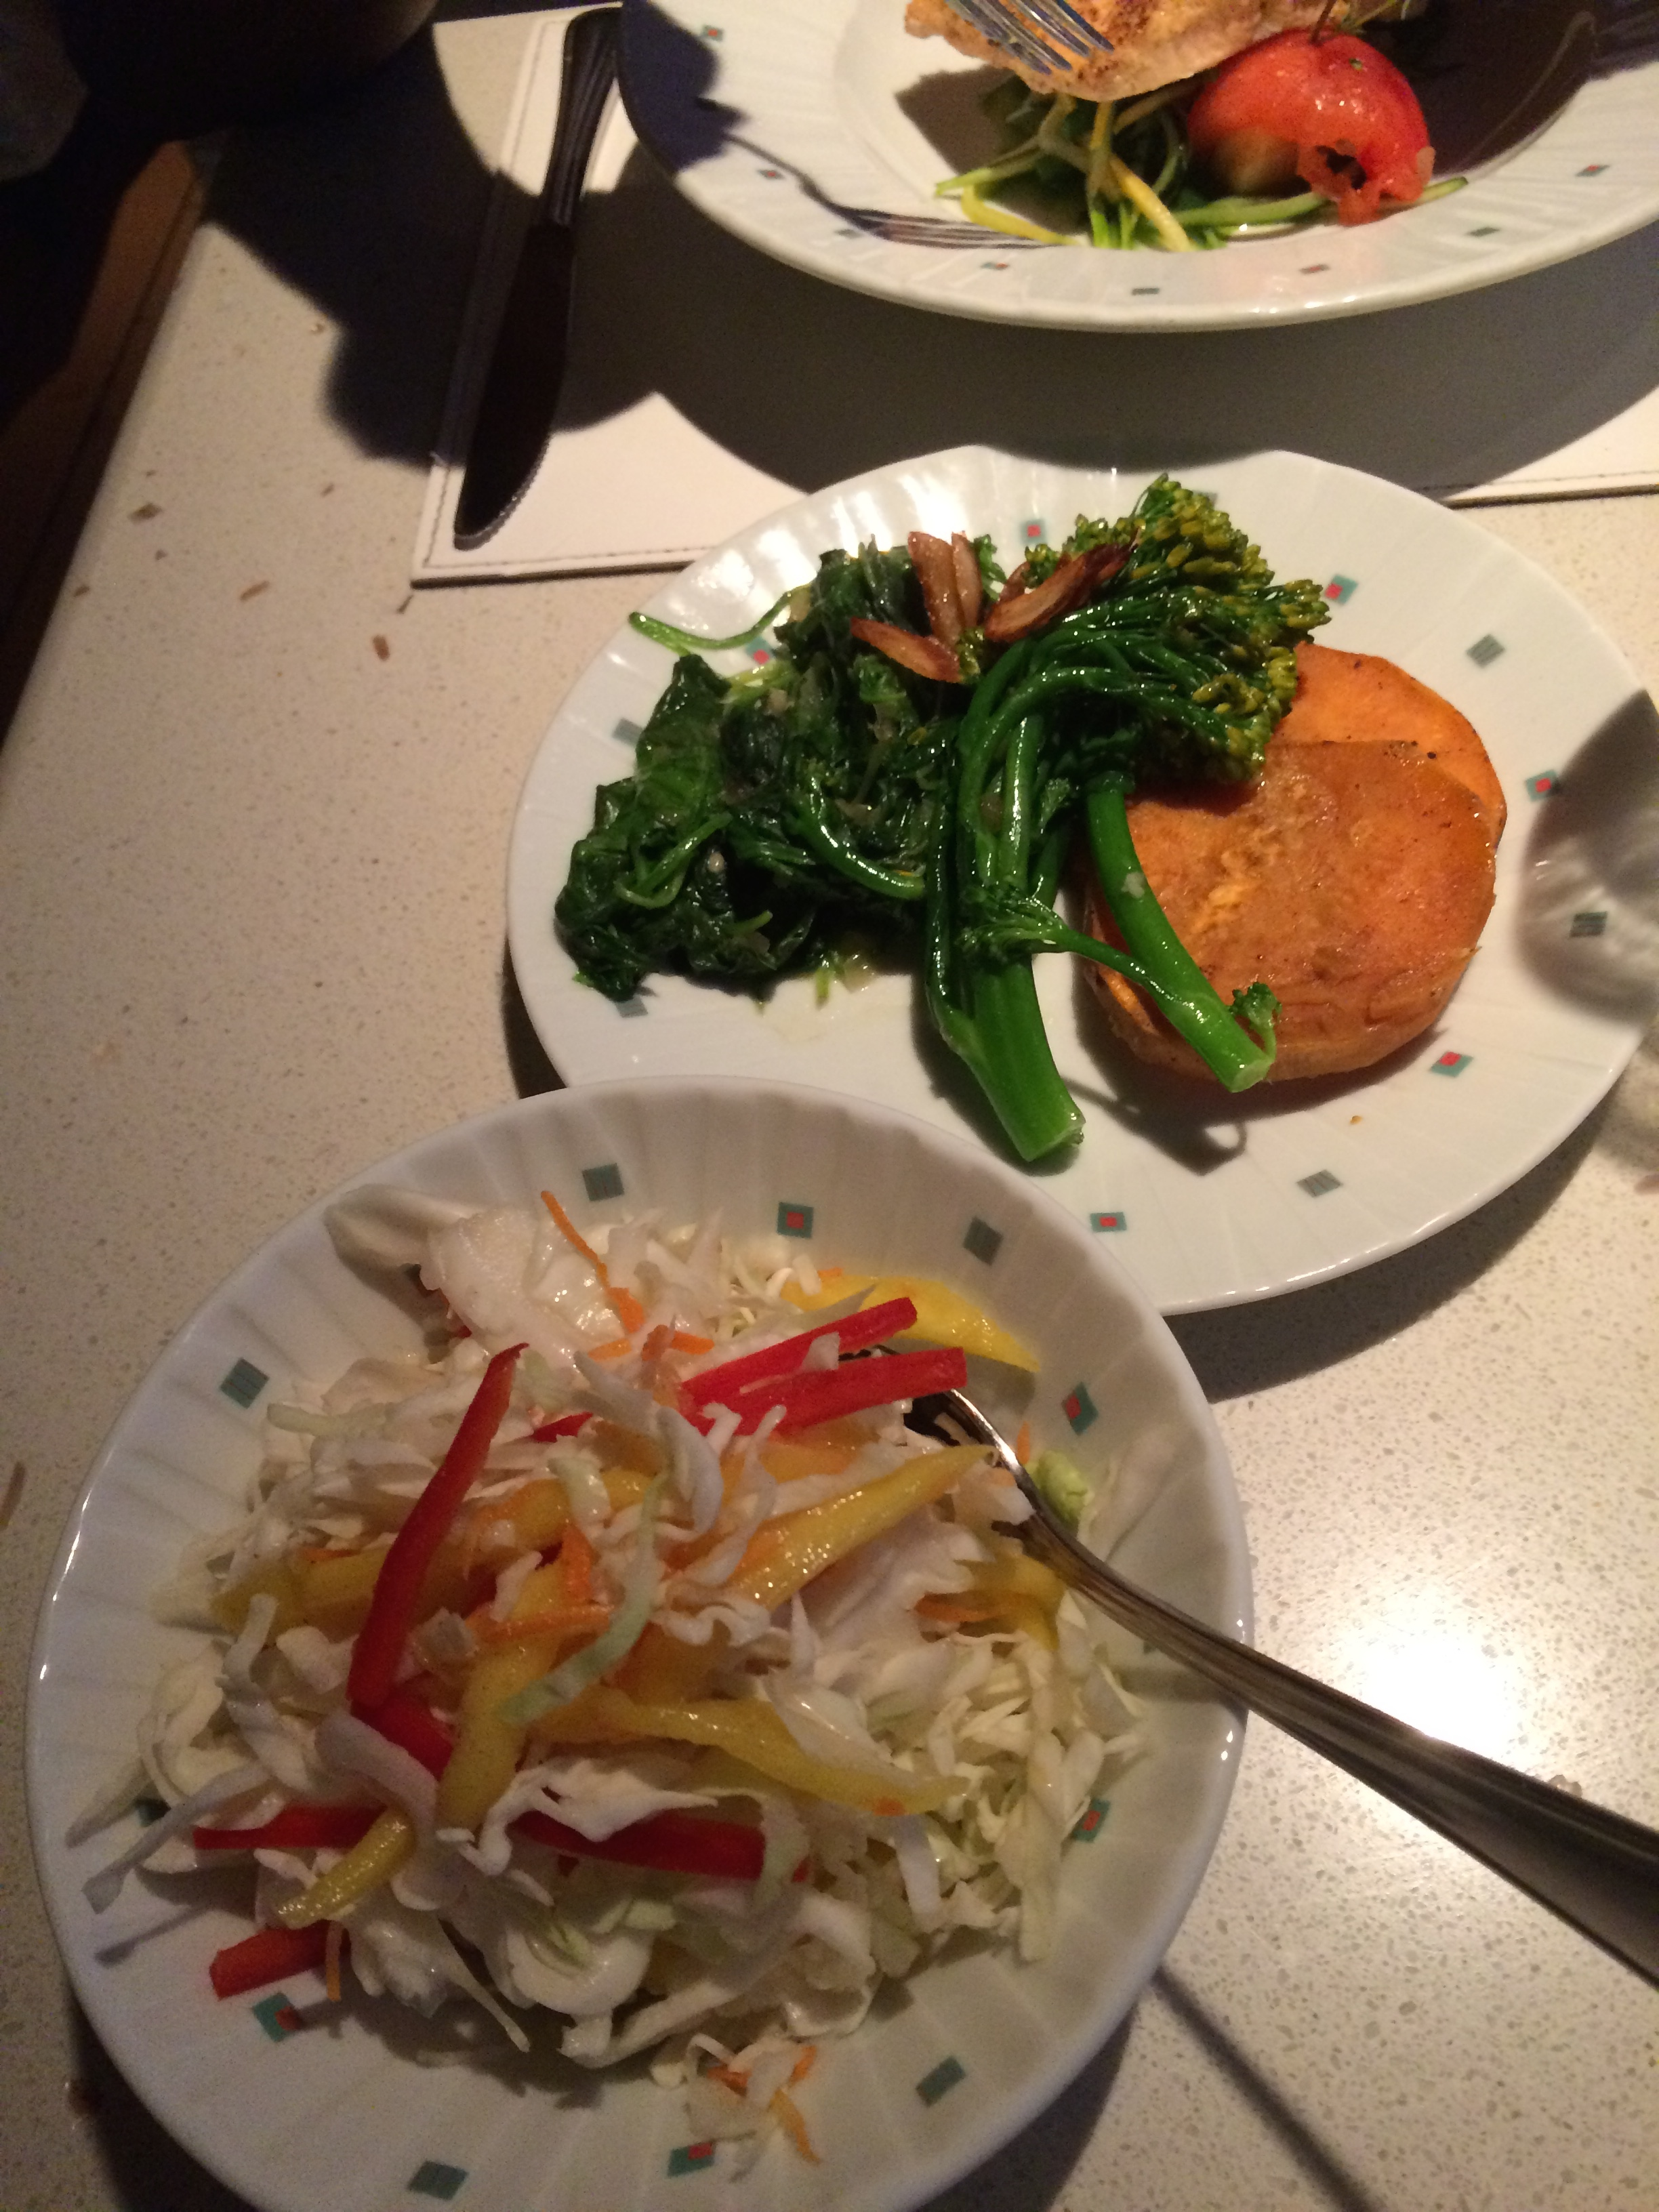 THE SIDE DISHES WE TRIED WERE TOTALLY FRESH